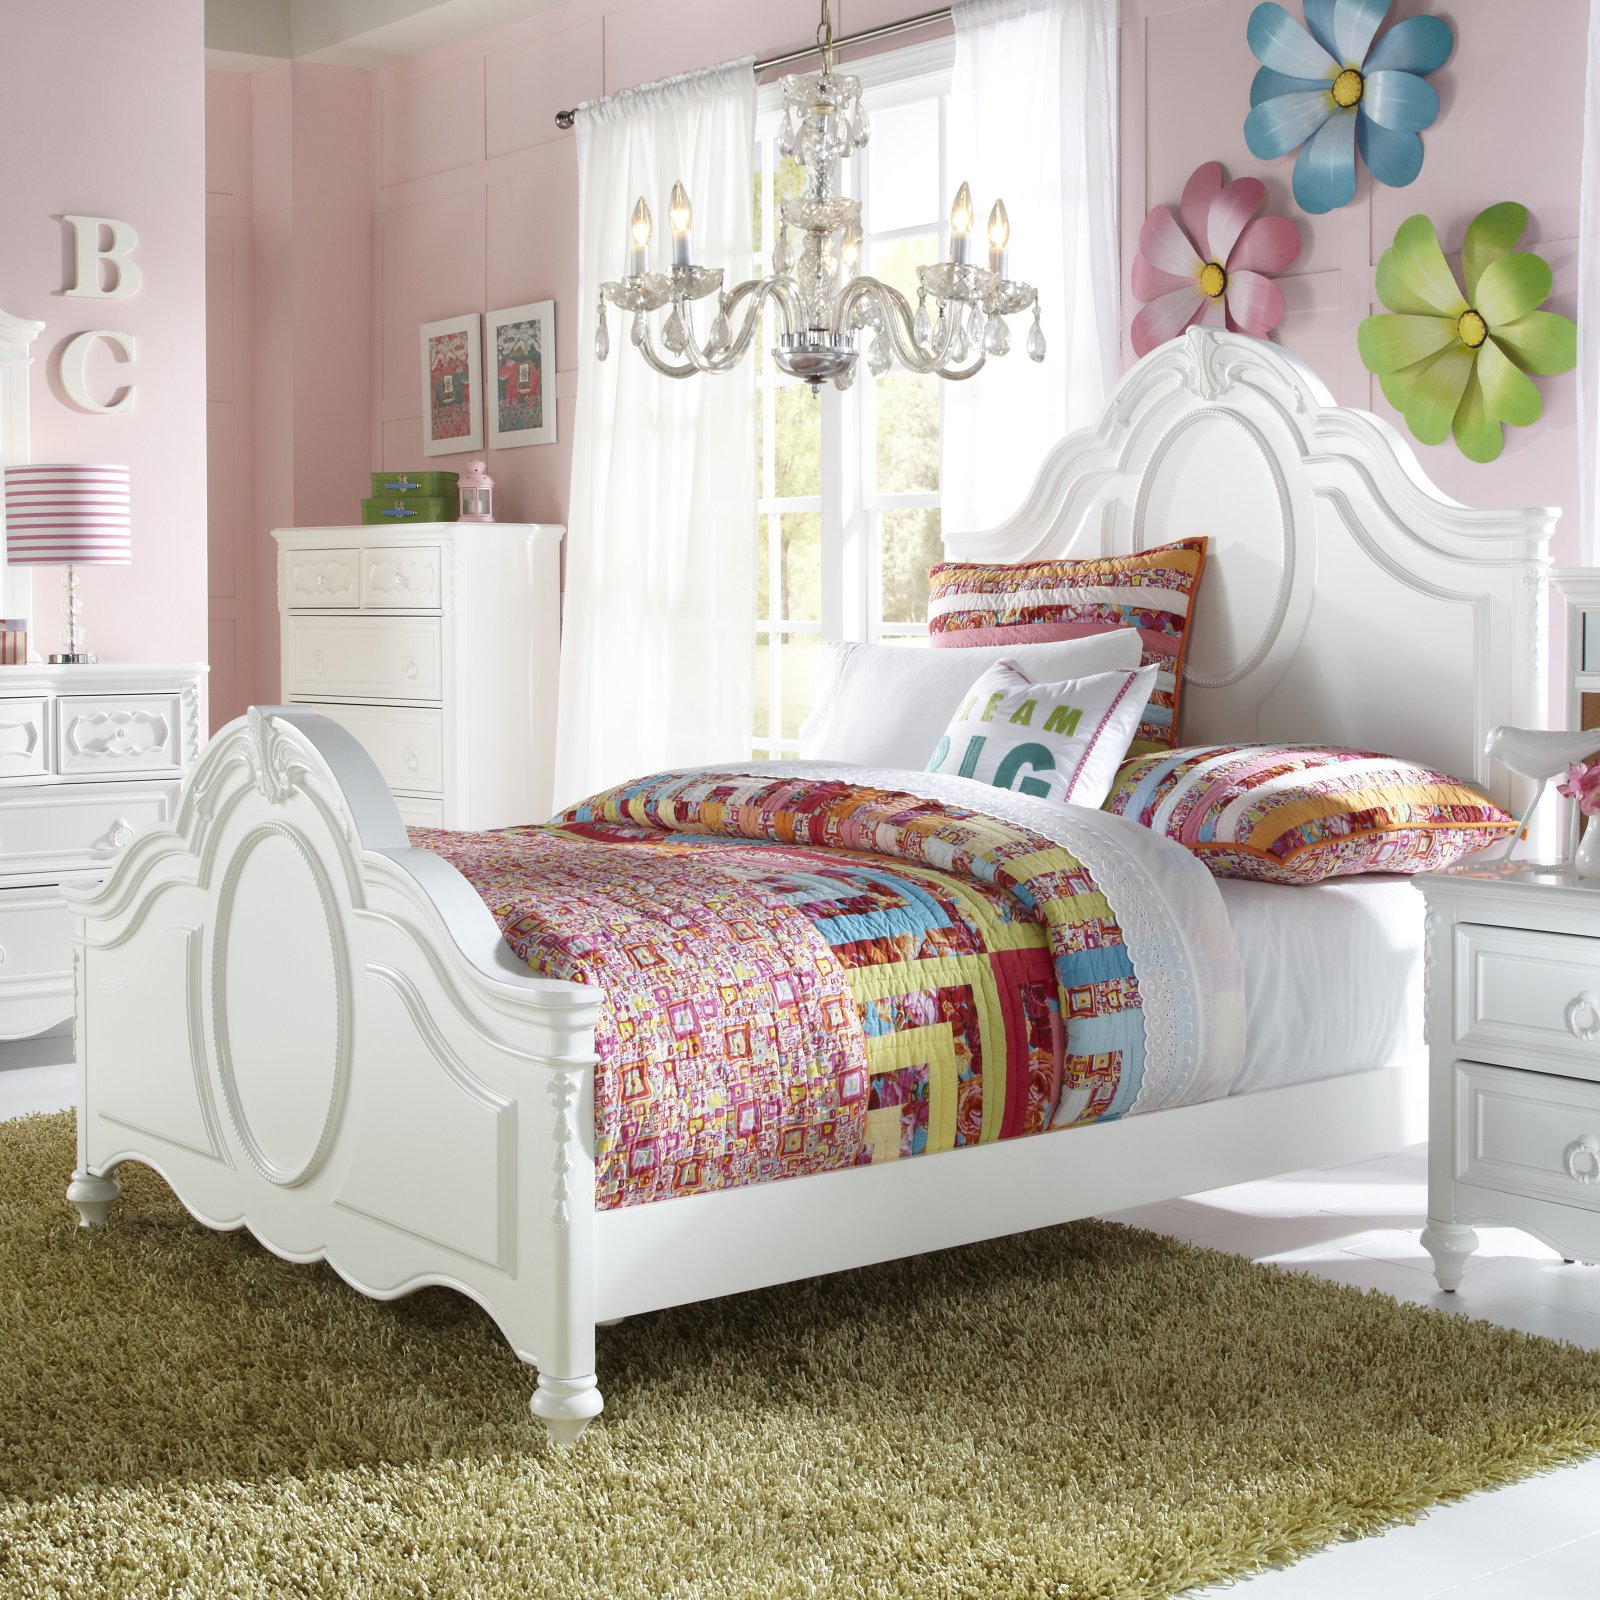 SweetHeart Panel Bed - White